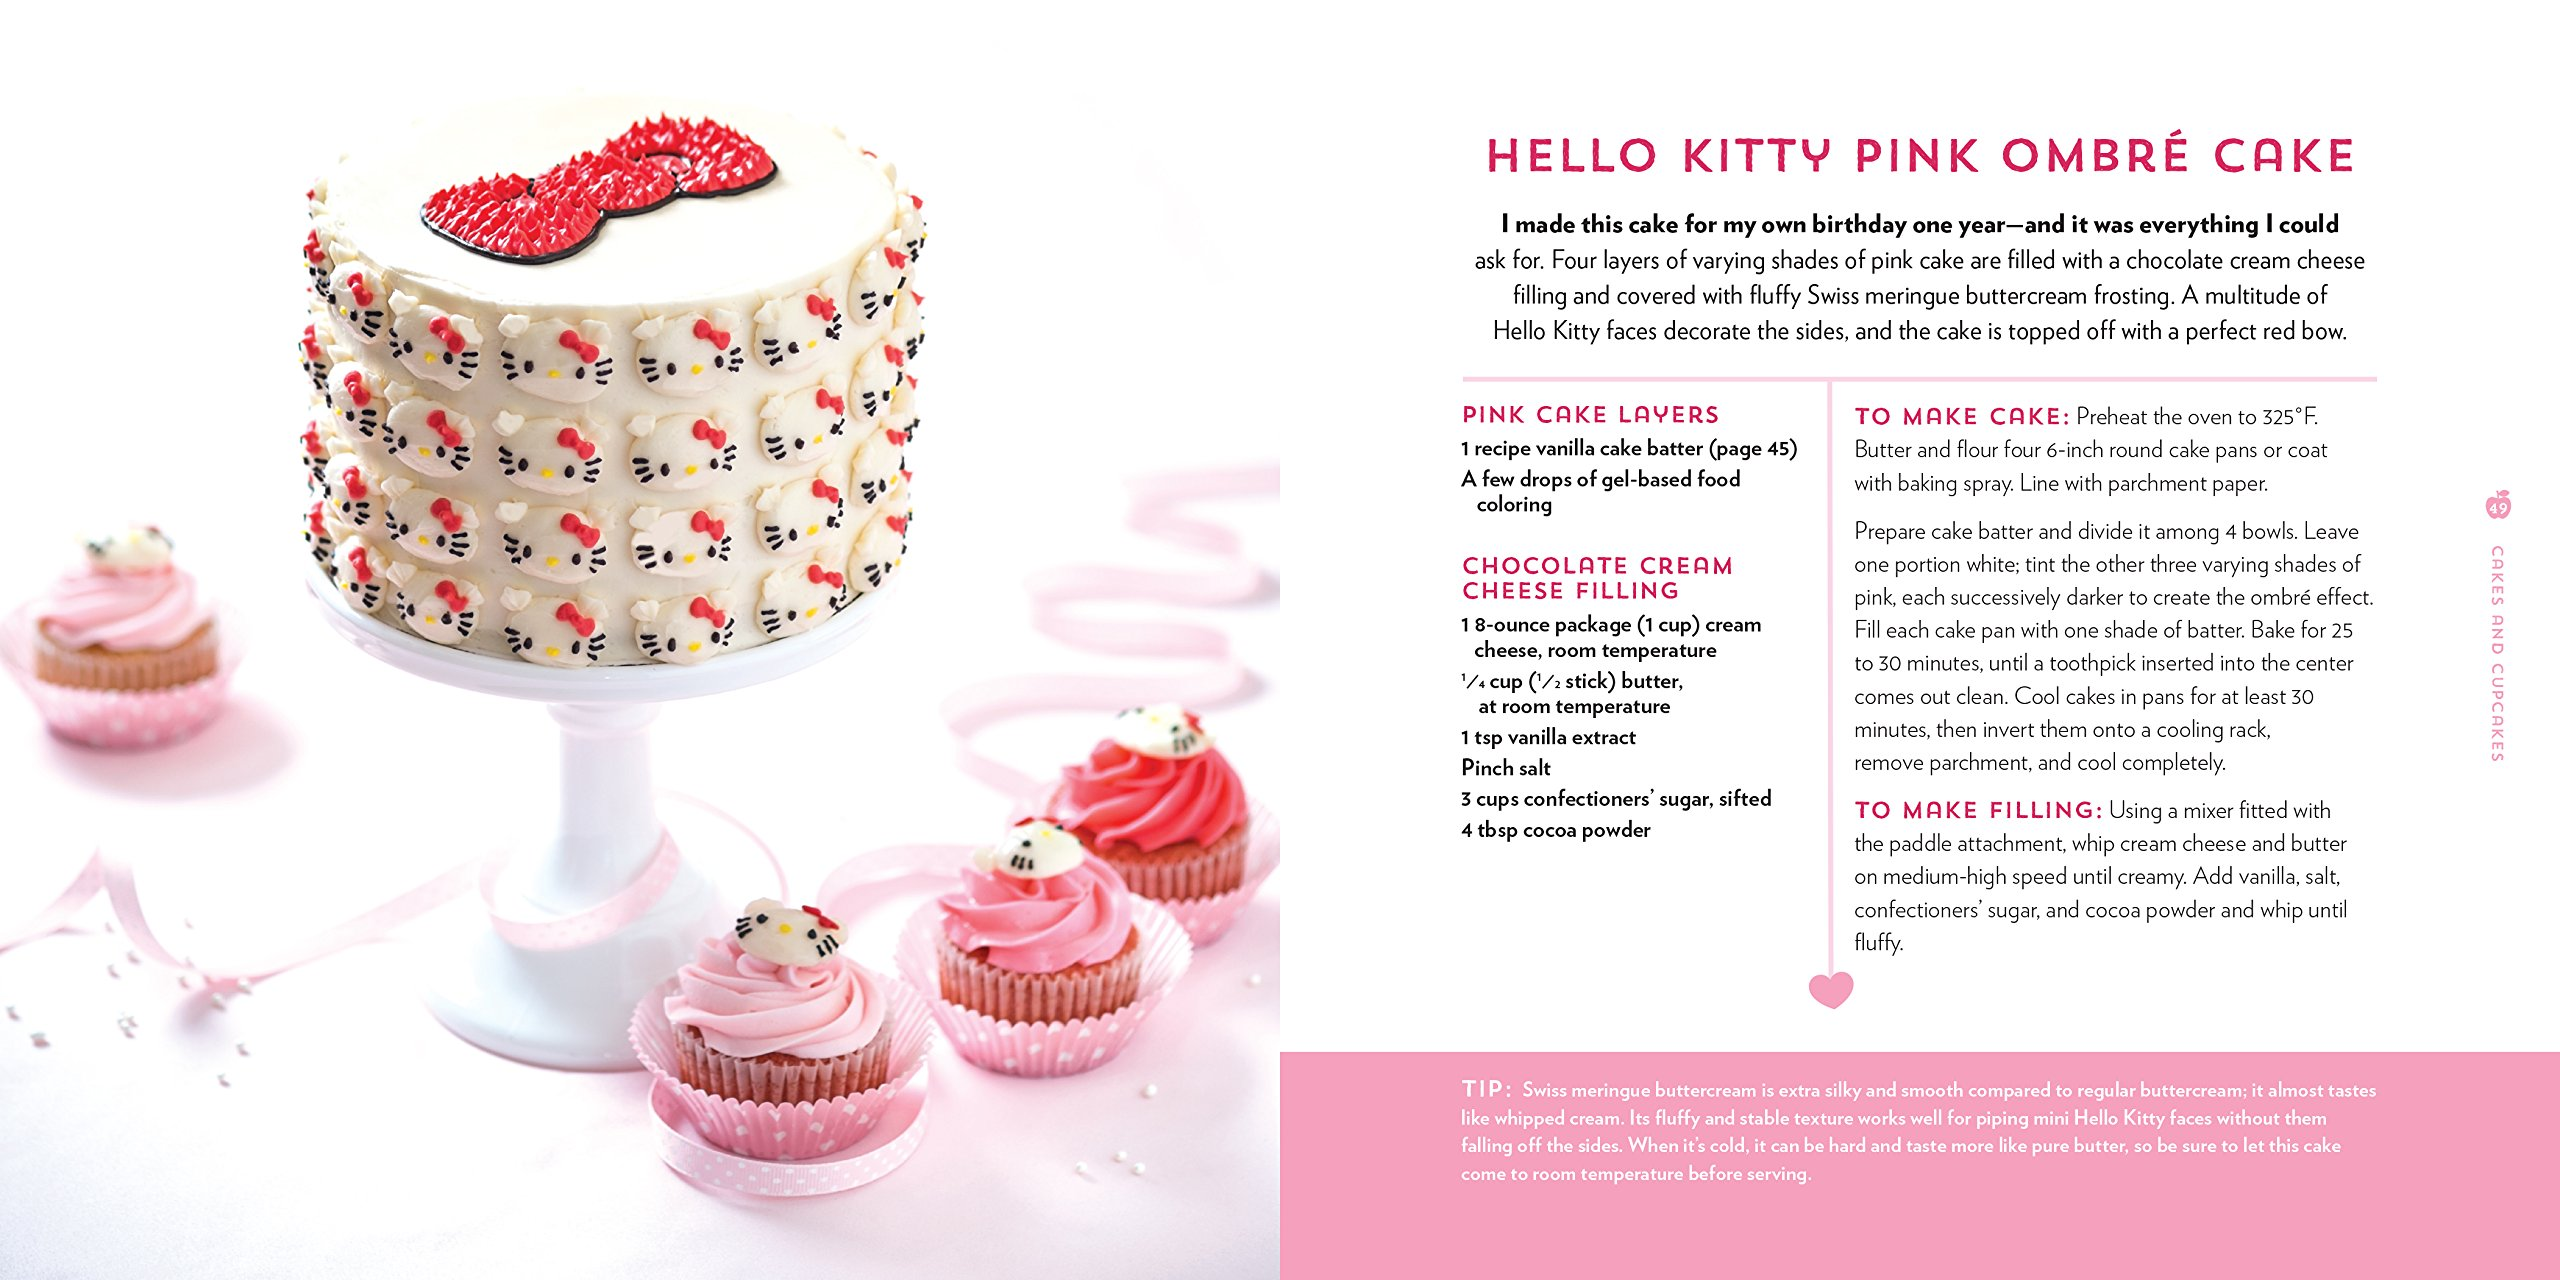 The Hello Kitty Baking Book Recipes For Cookies Cupcakes And More Amazonde Michele Chen Chock Fremdsprachige Bucher